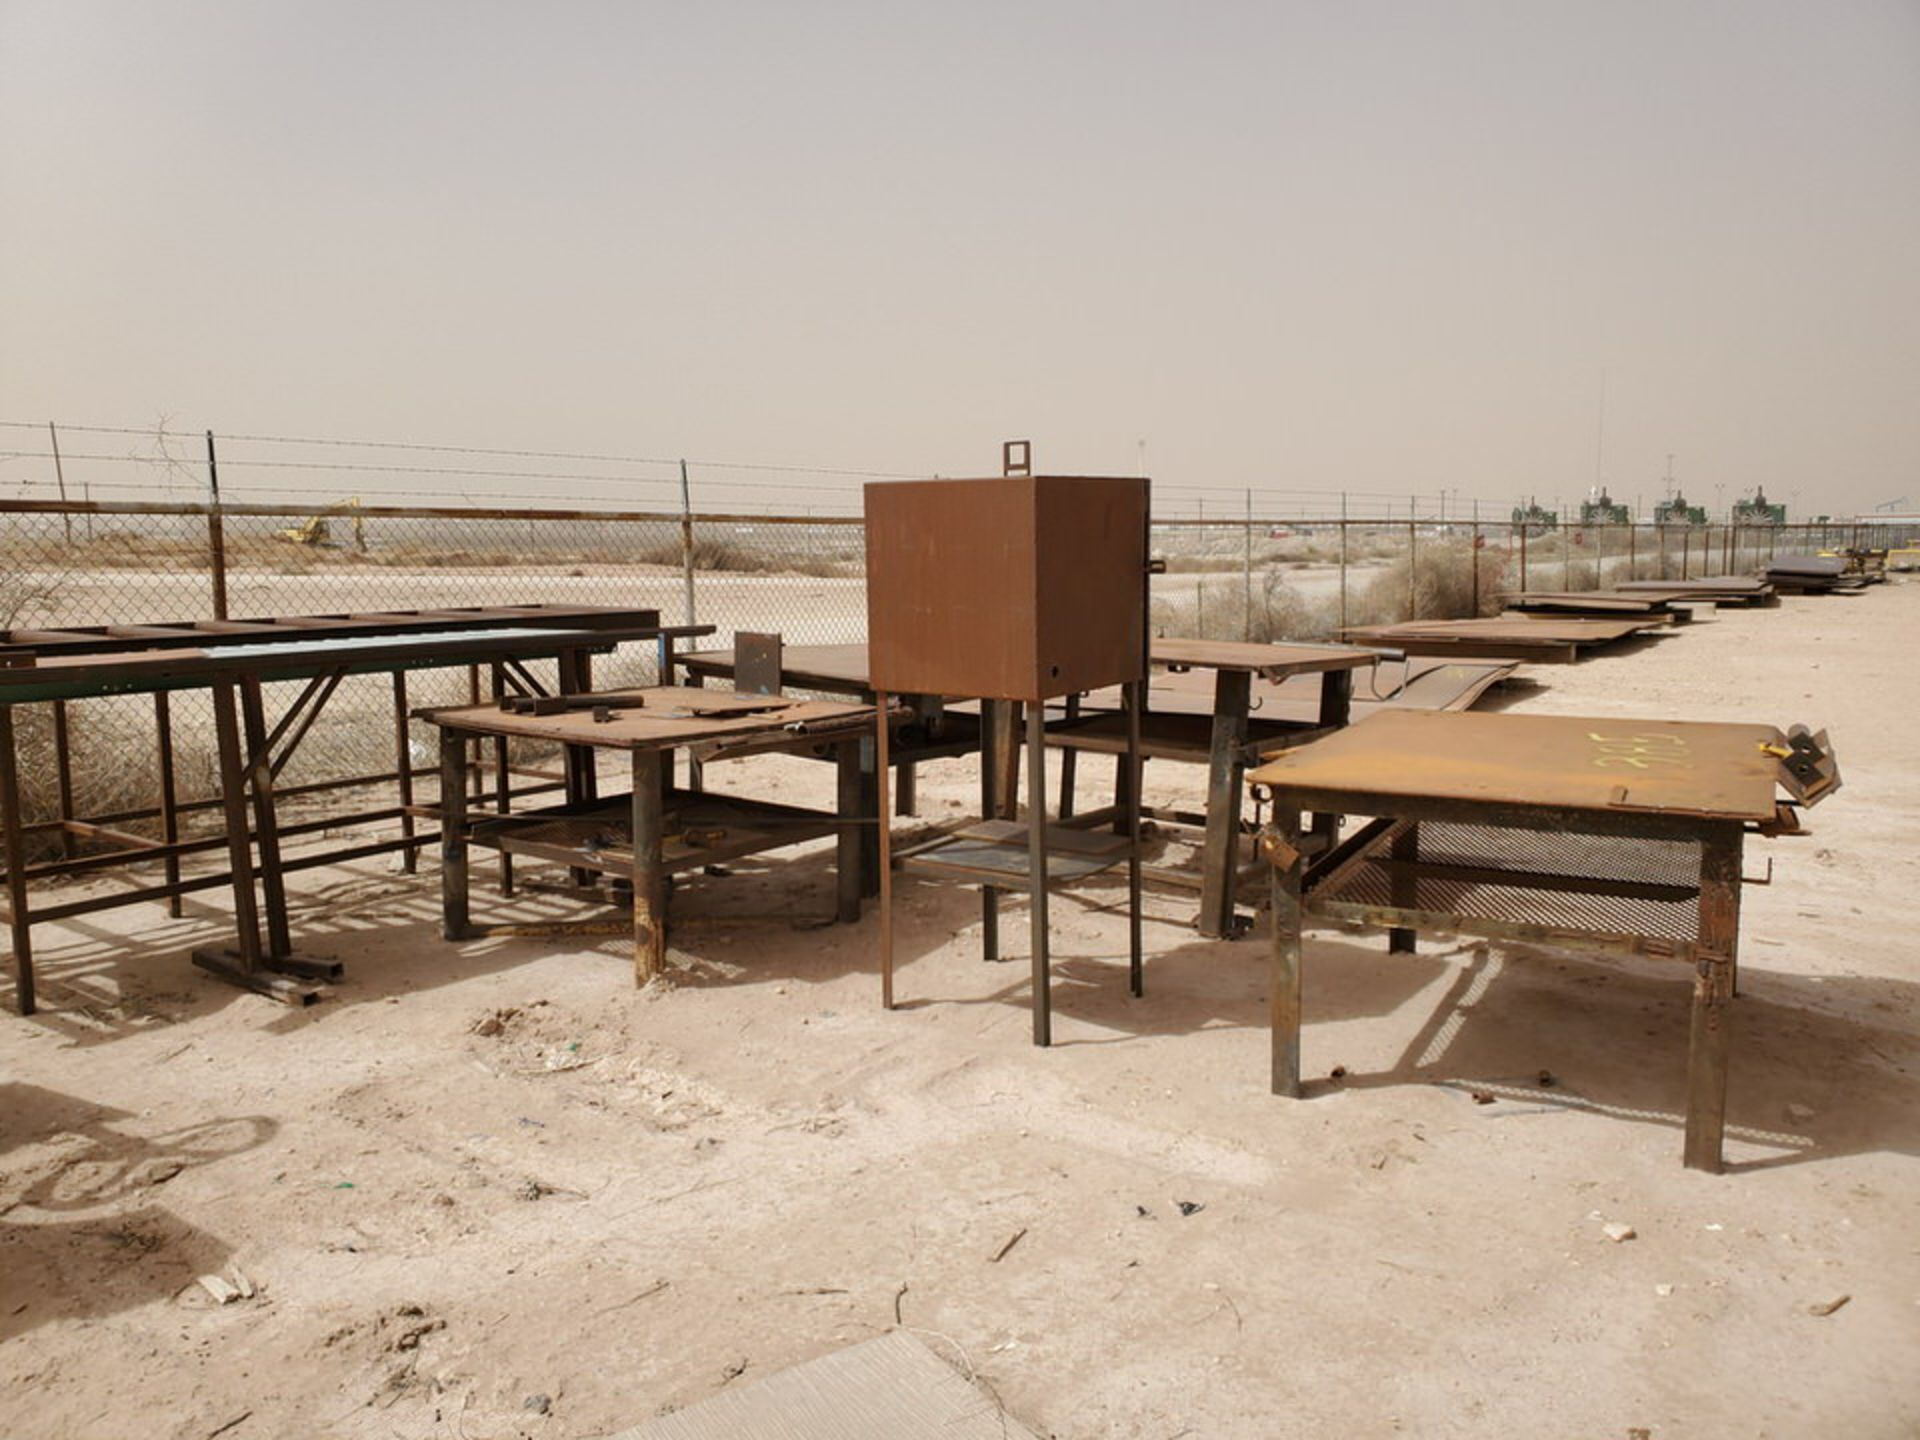 Assorted Matl. To Include But Not Limited To: (3) Welding Tables, Rolling Conveyor, Storage - Image 7 of 11